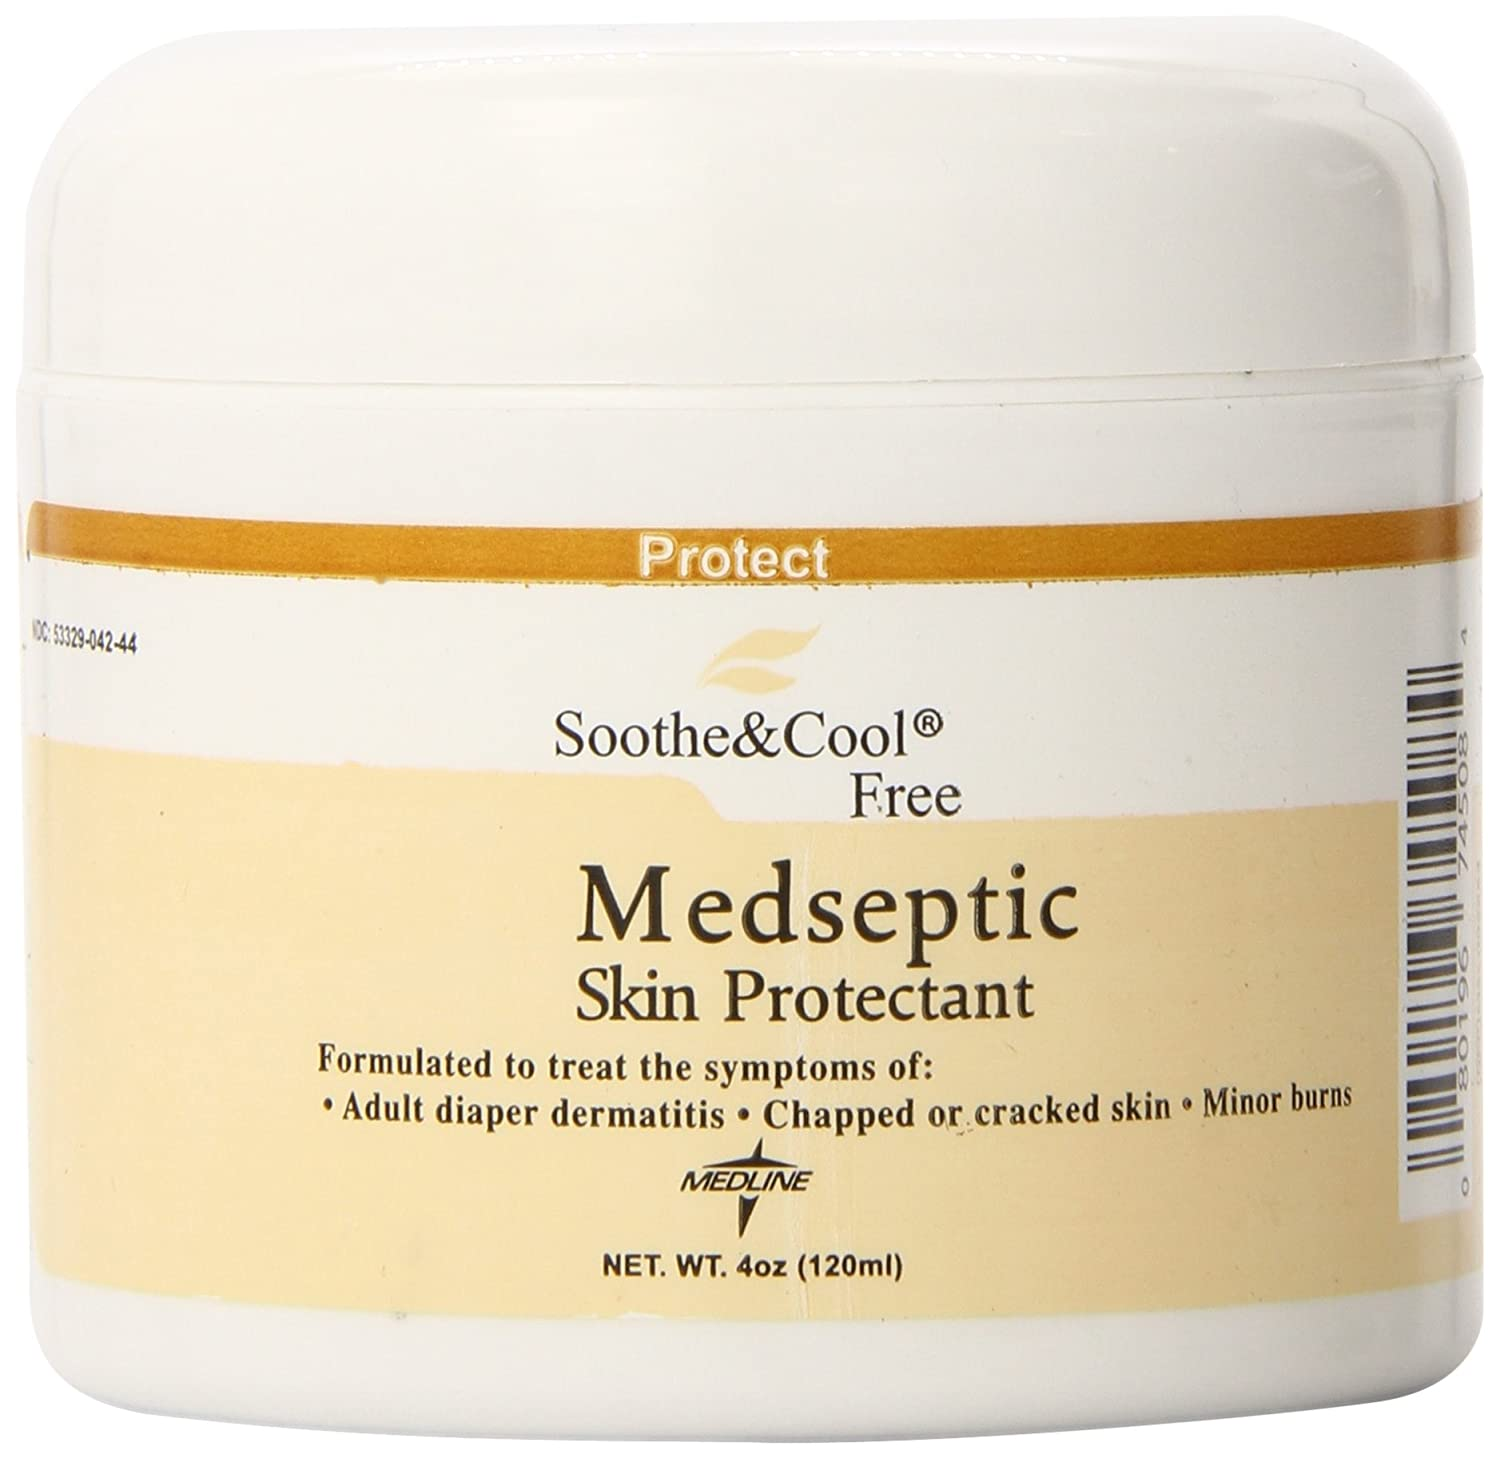 Discussion on this topic: Soothe And Cool Free Medseptic Skin Protectant , soothe-and-cool-free-medseptic-skin-protectant/